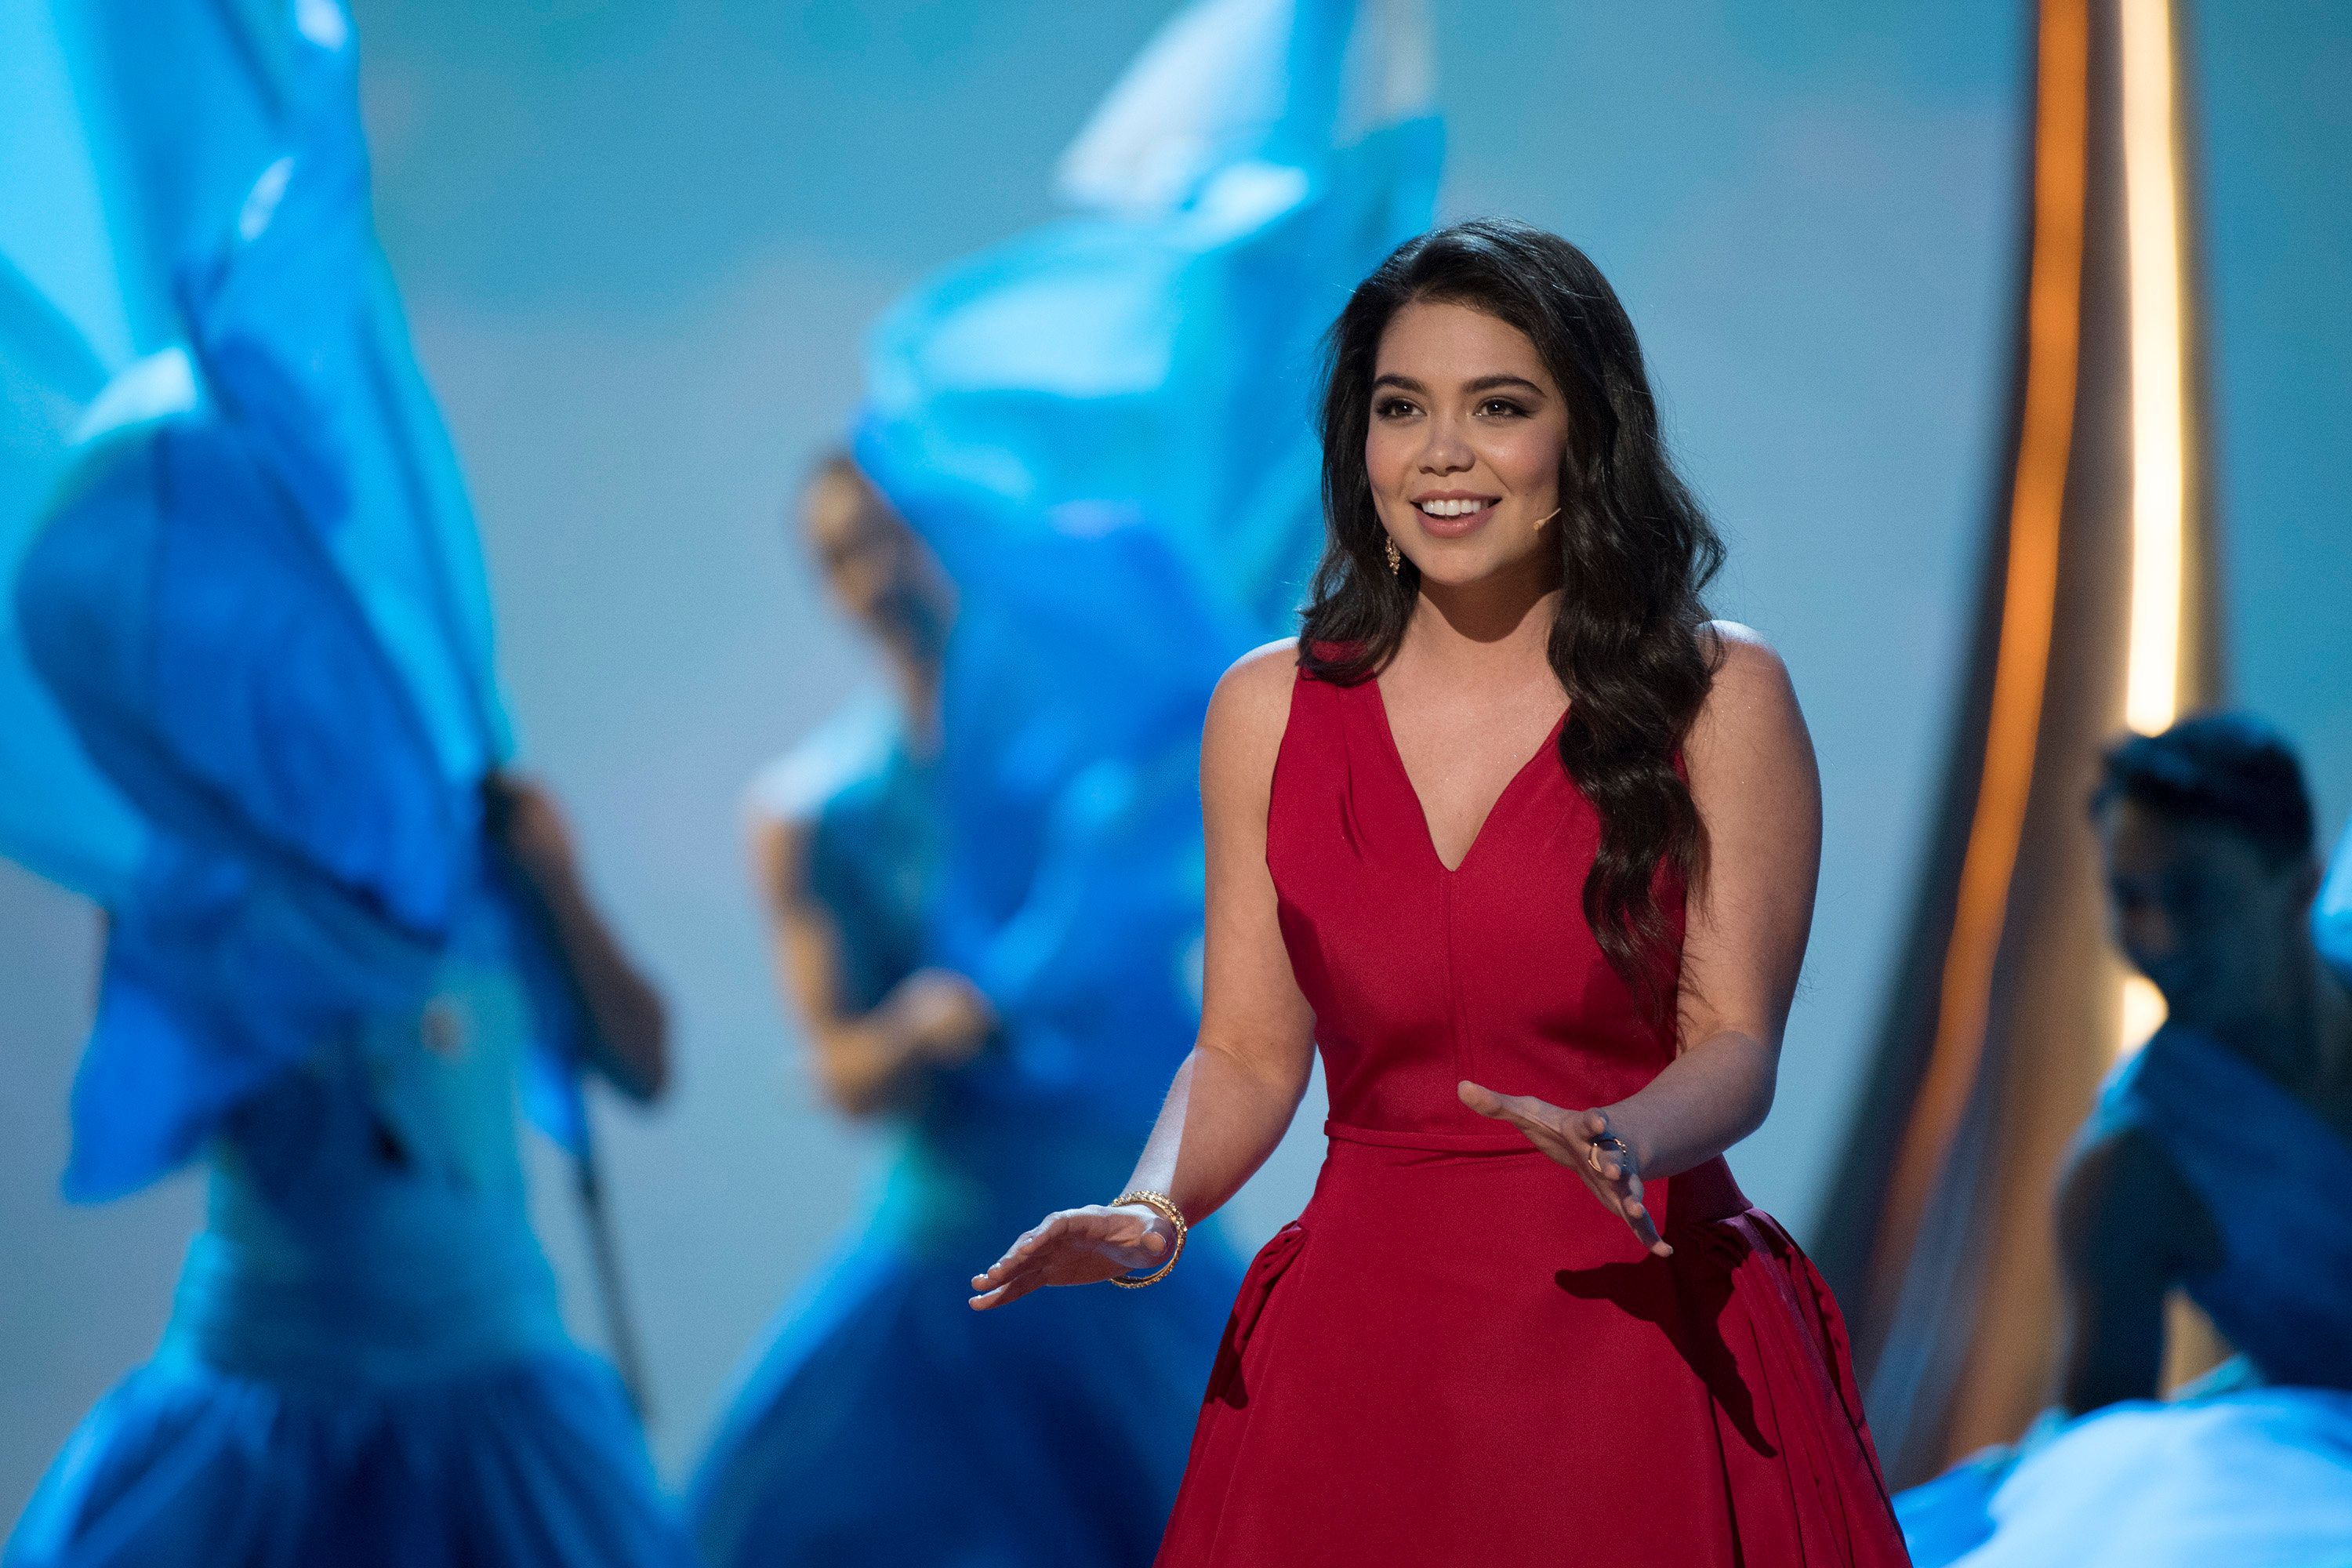 THE OSCARS(r) - The 89th Oscars(r)  broadcasts live on Oscar(r) SUNDAY, FEBRUARY 26, 2017, on the ABC Television Network. (Eddy Chen/ABC via Getty Images) AULI'I CRAVALHO